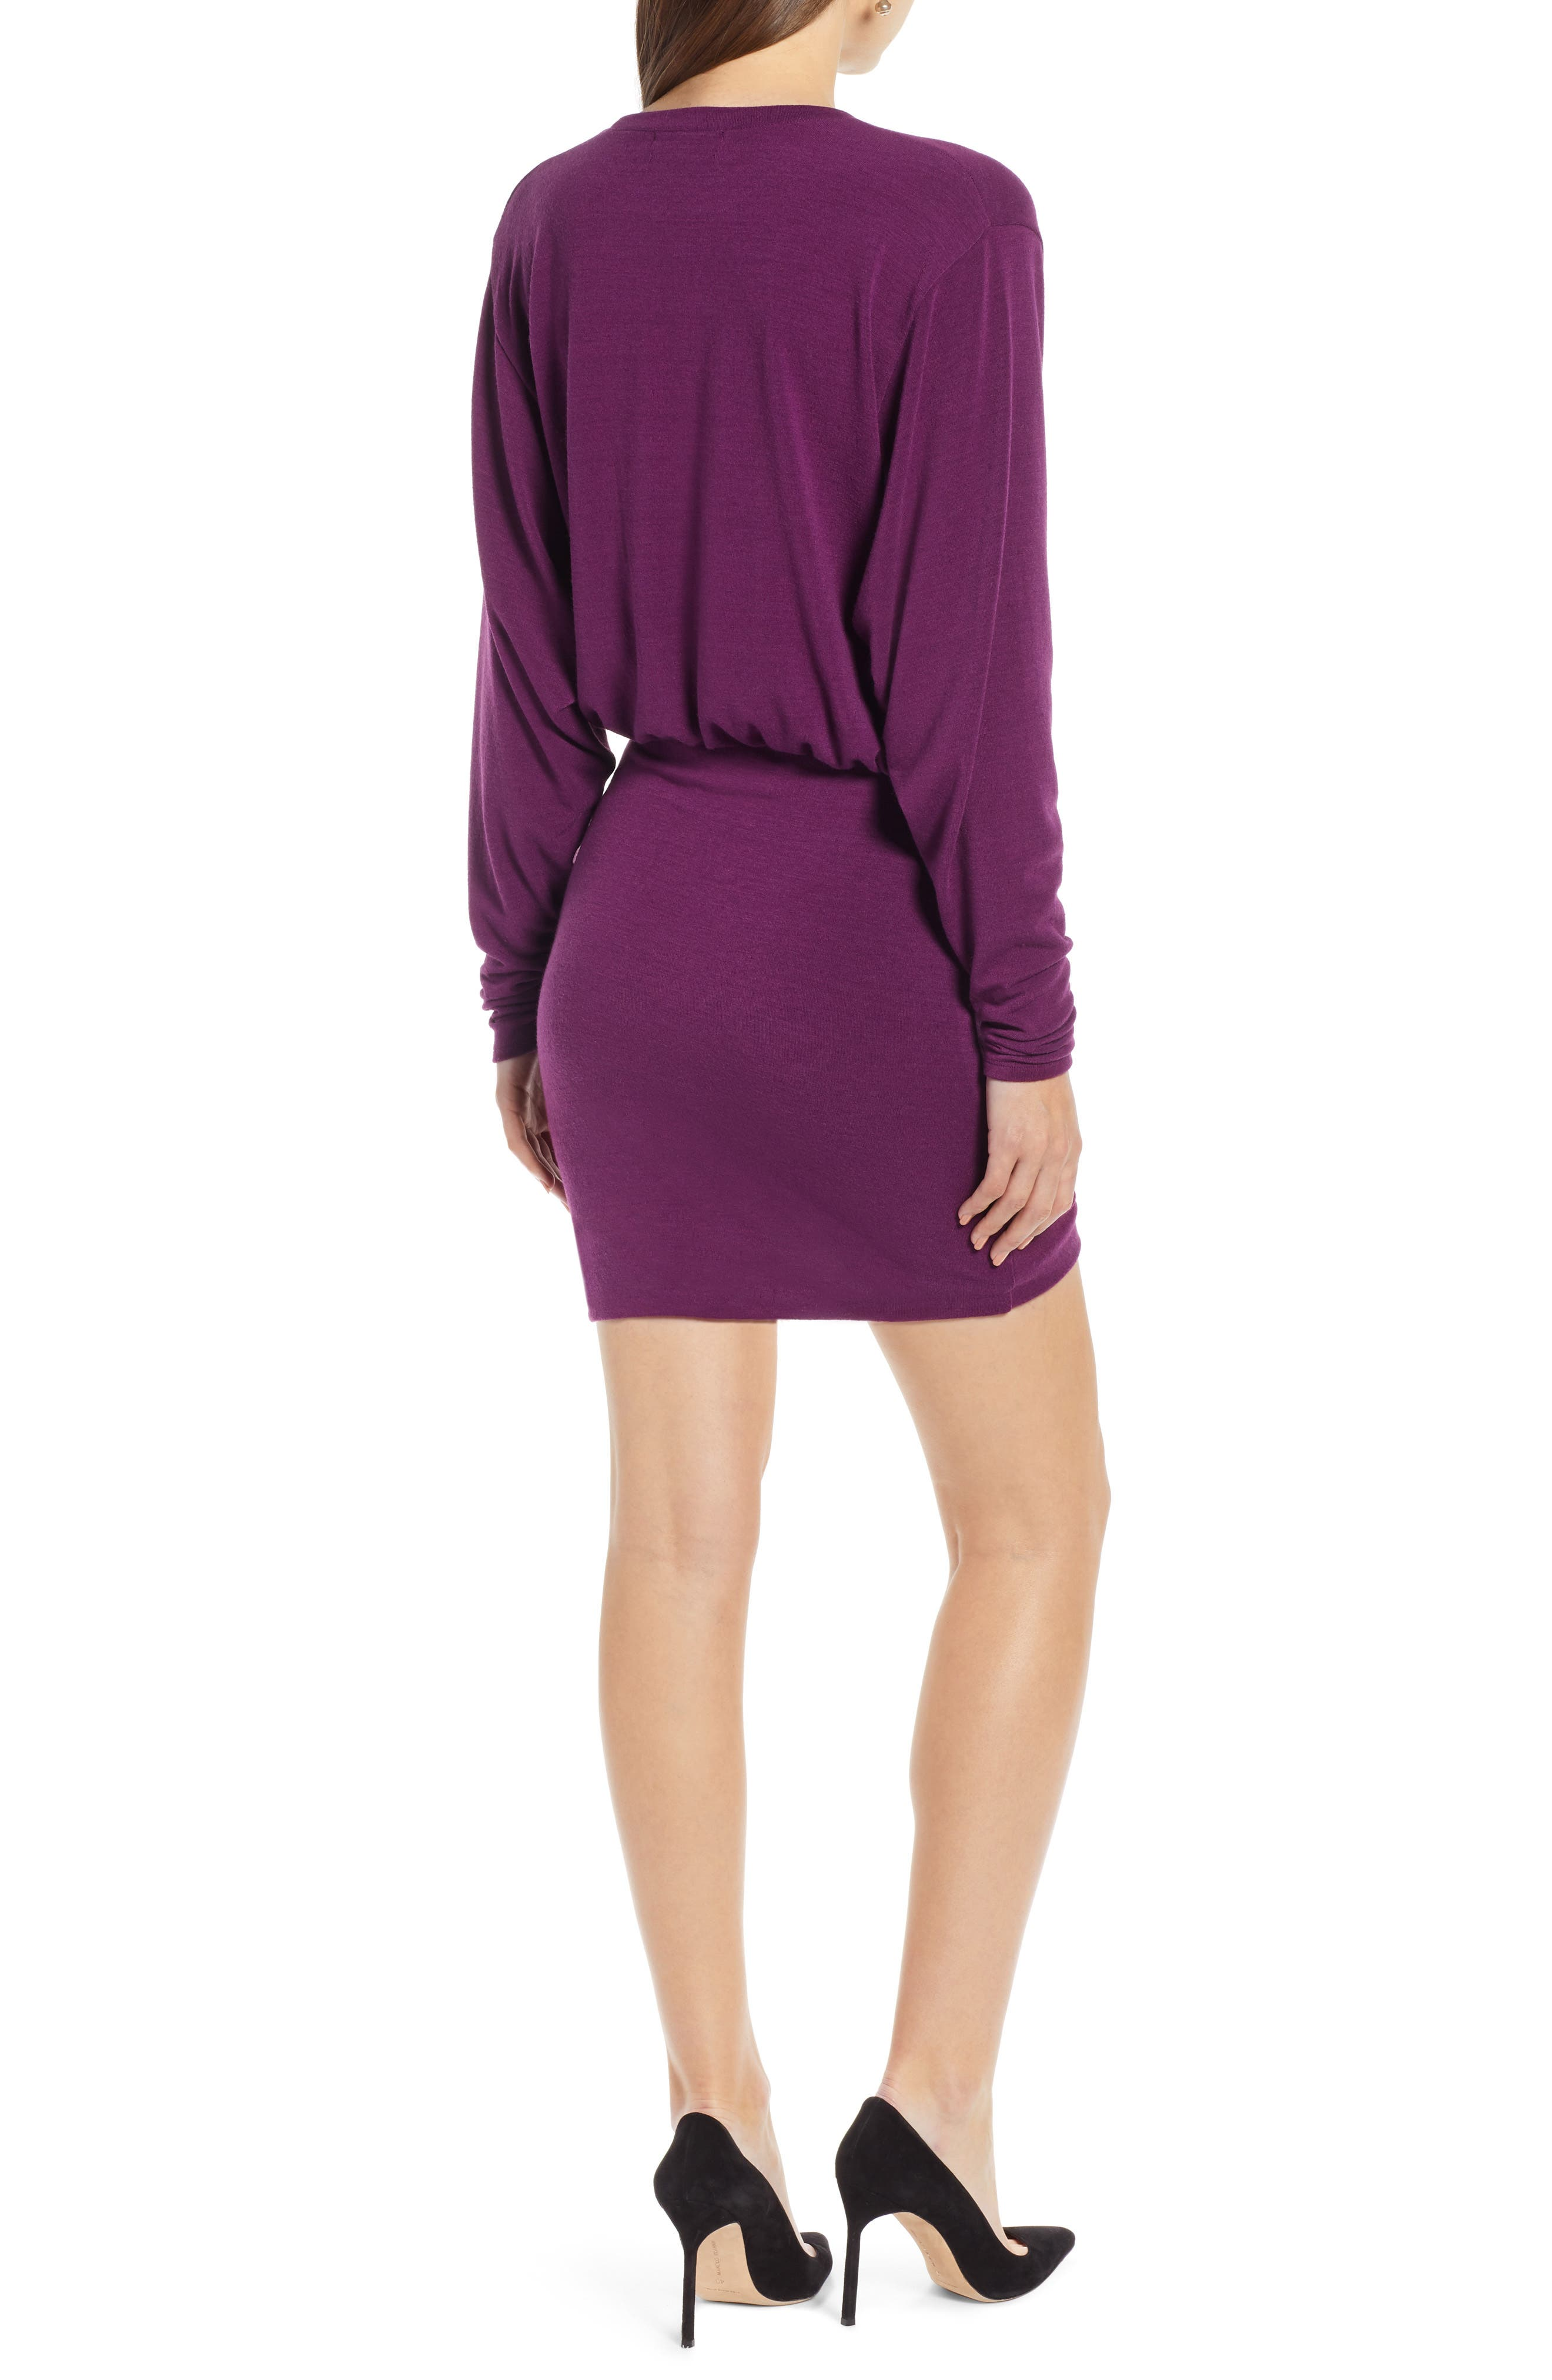 Ruched Detail Dress,                             Alternate thumbnail 2, color,                             PURPLE IMPERIAL